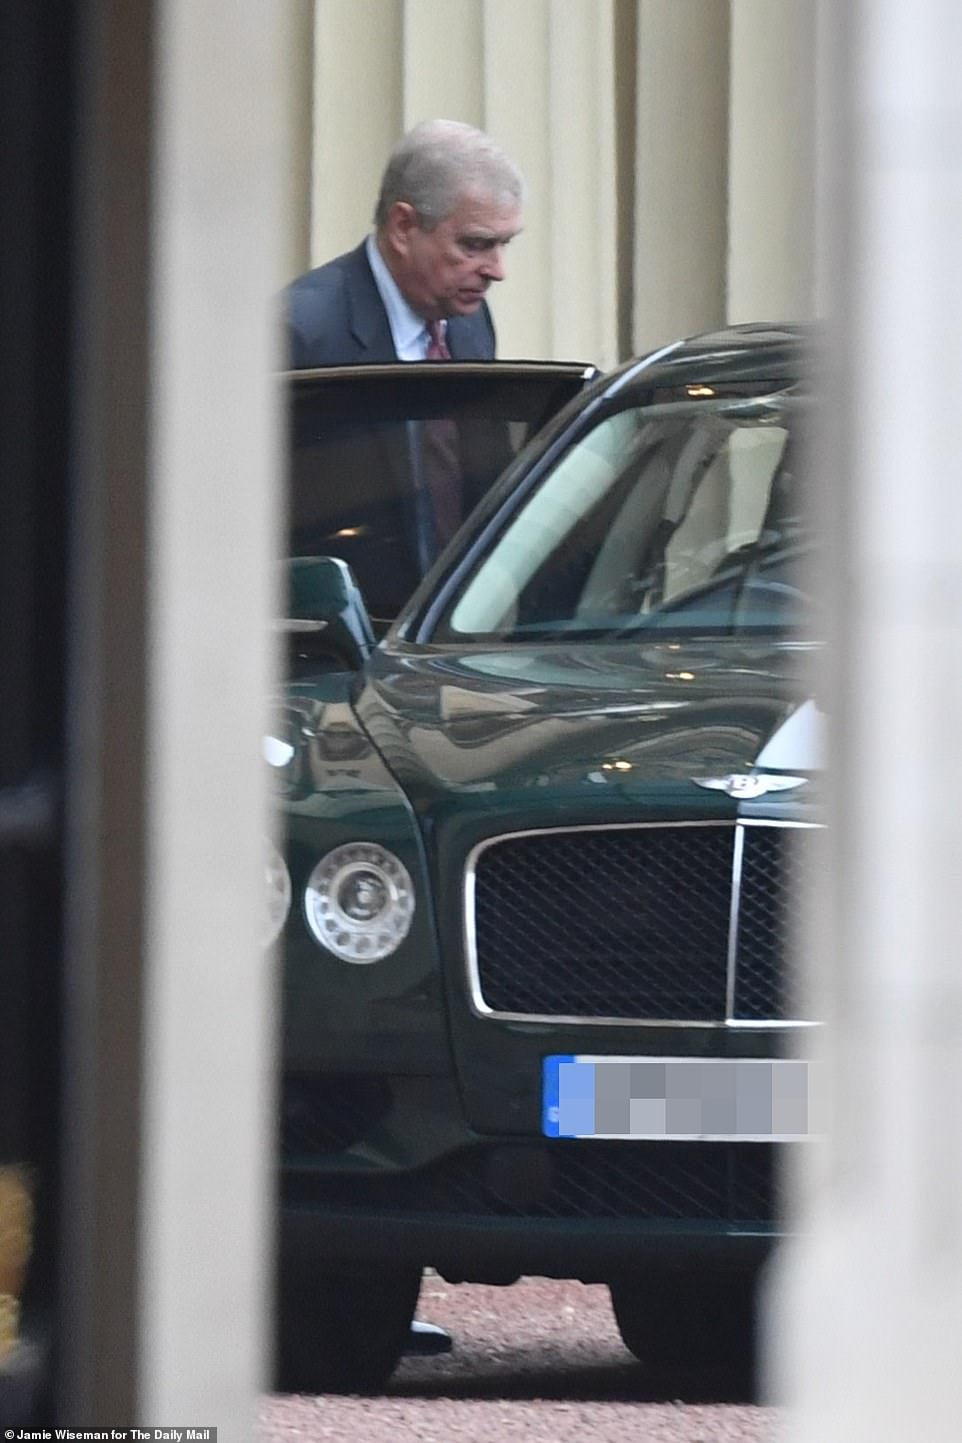 Andrew looked more downcast as he exited his £170,000 Bentley Flying Spur sports car in Buckingham Palace's courtyard this afternoon before a meeting with the Queen today. He also has his office at his mother's London home